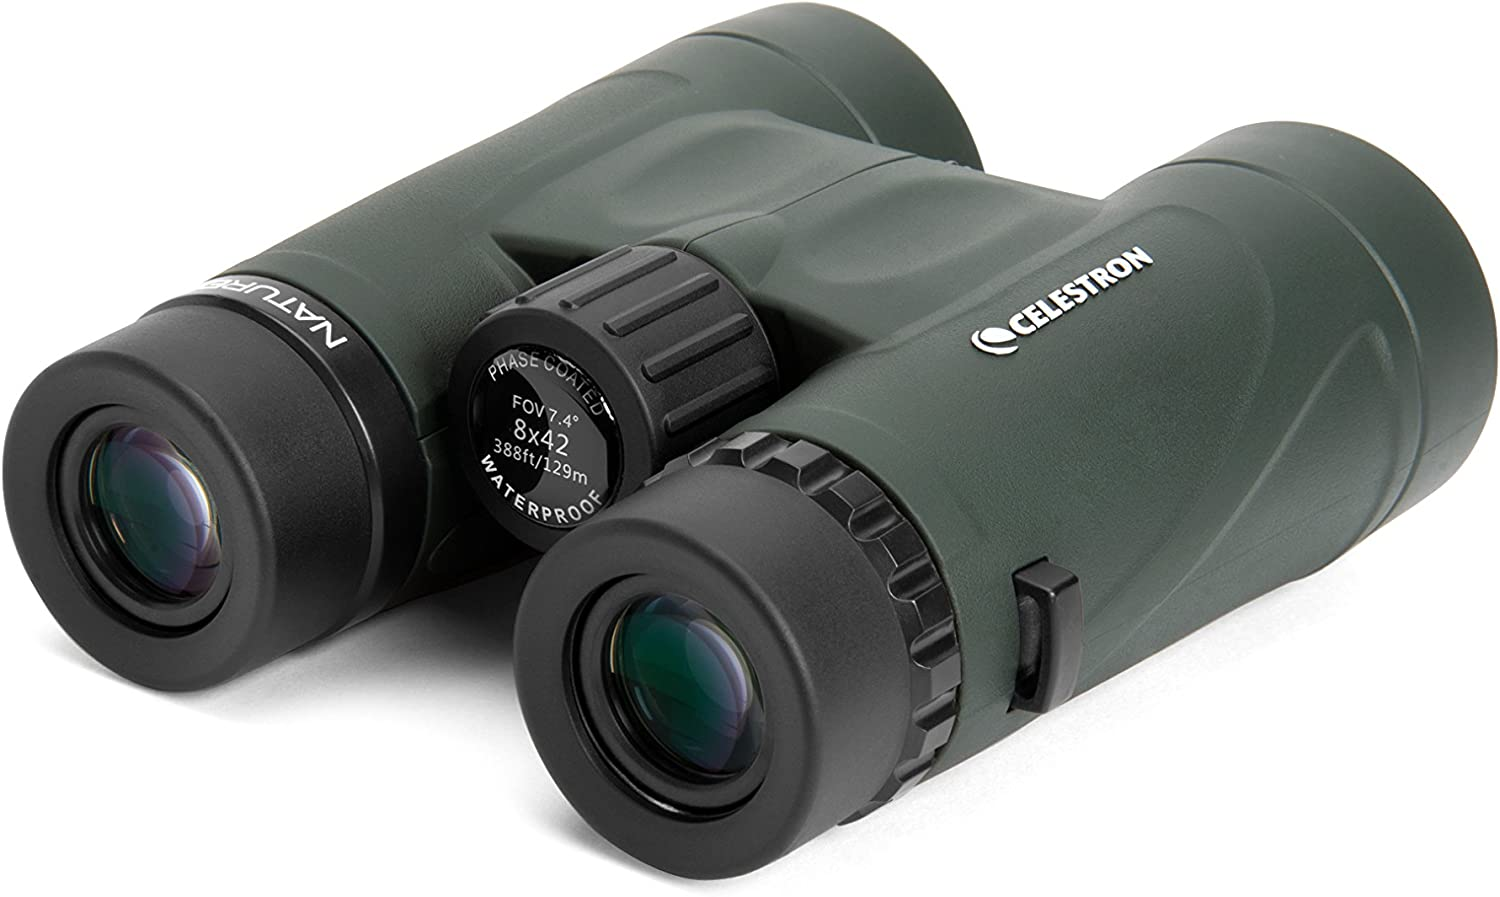 Celestron – Nature DX 8×42 Binocular – Top Rated Birding Binoculars – Fully Multi-Coated Optics with Phase Coated BaK-4 Prisms – Waterproof, Fogproof, and Rubber Armored – 6.5 Close Focus